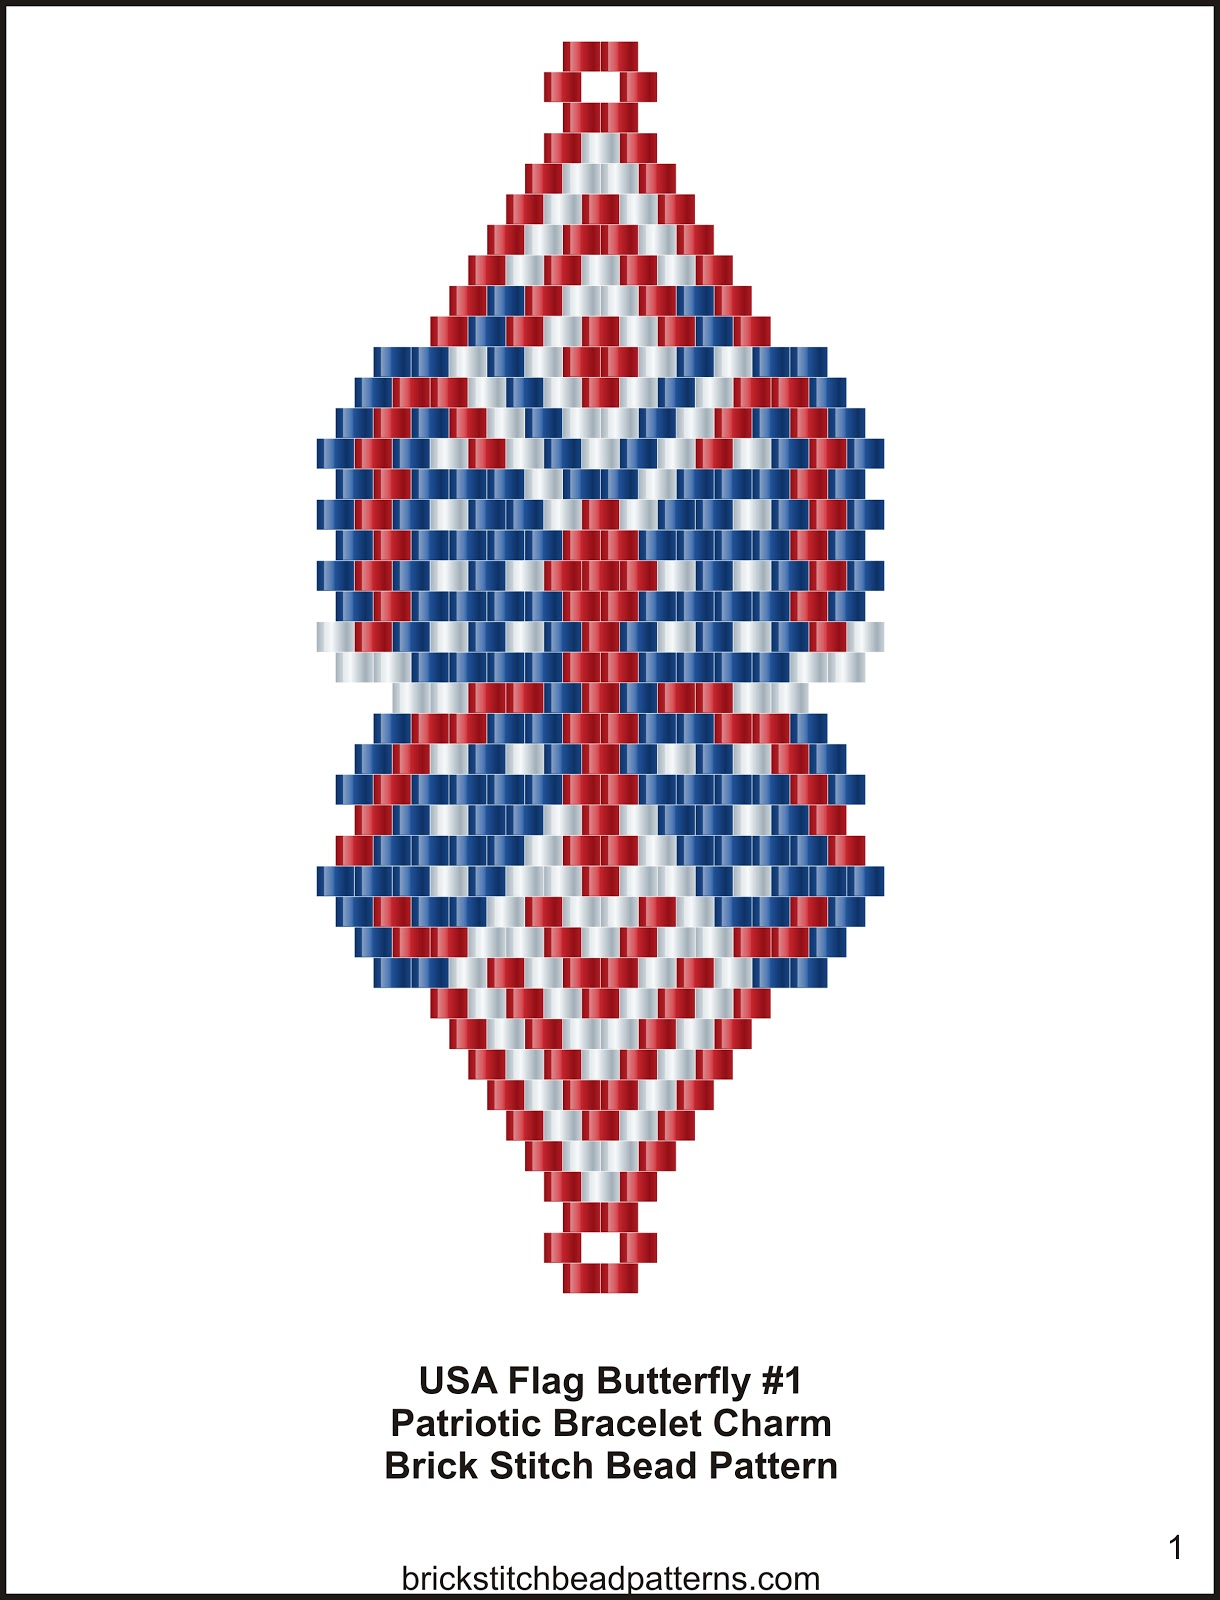 Brick stitch bead patterns journal usa flag butterfly 1 for Patriotic beaded jewelry patterns